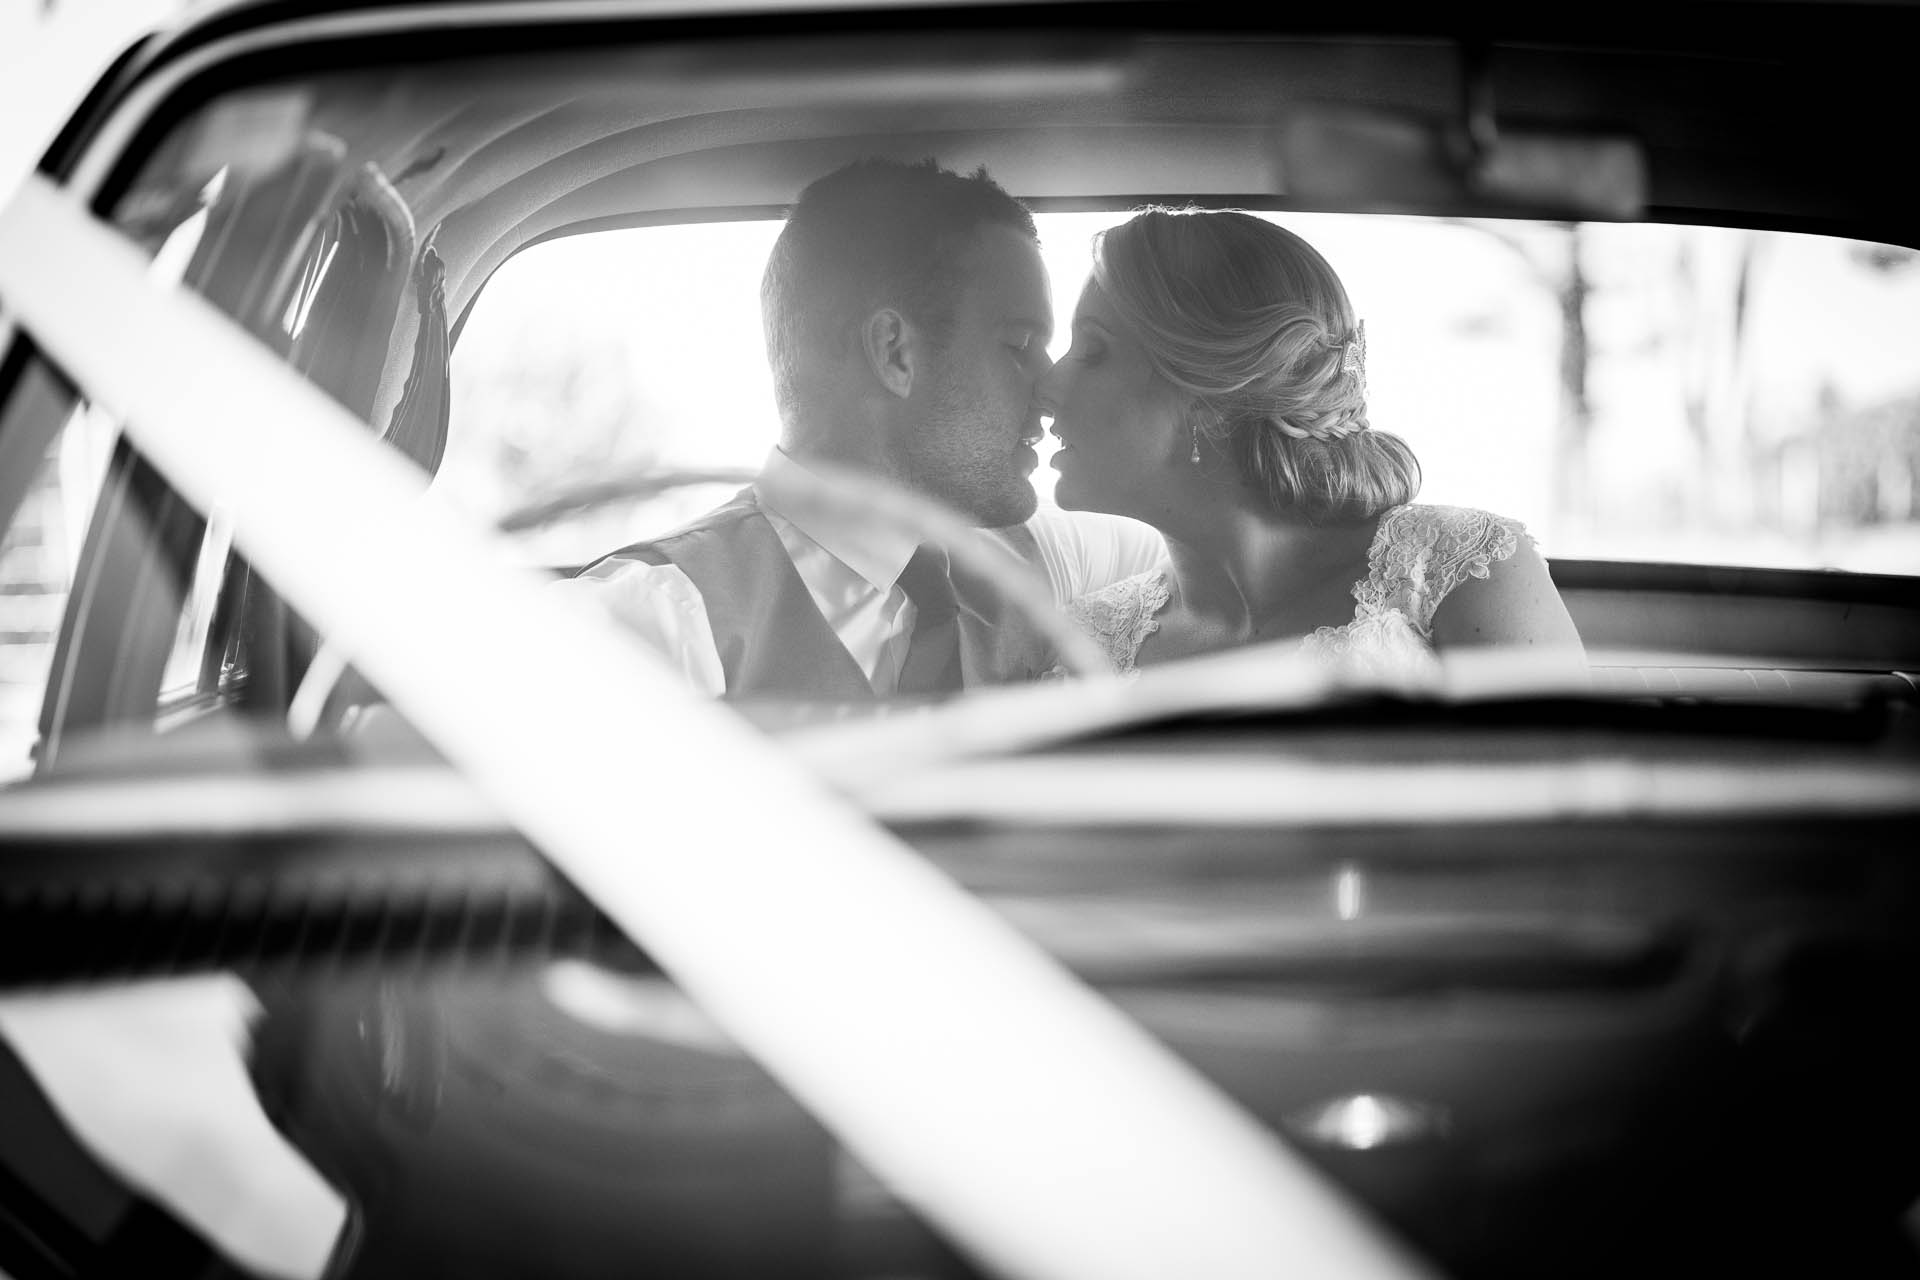 Bride-and-groom-black-white-car-kiss